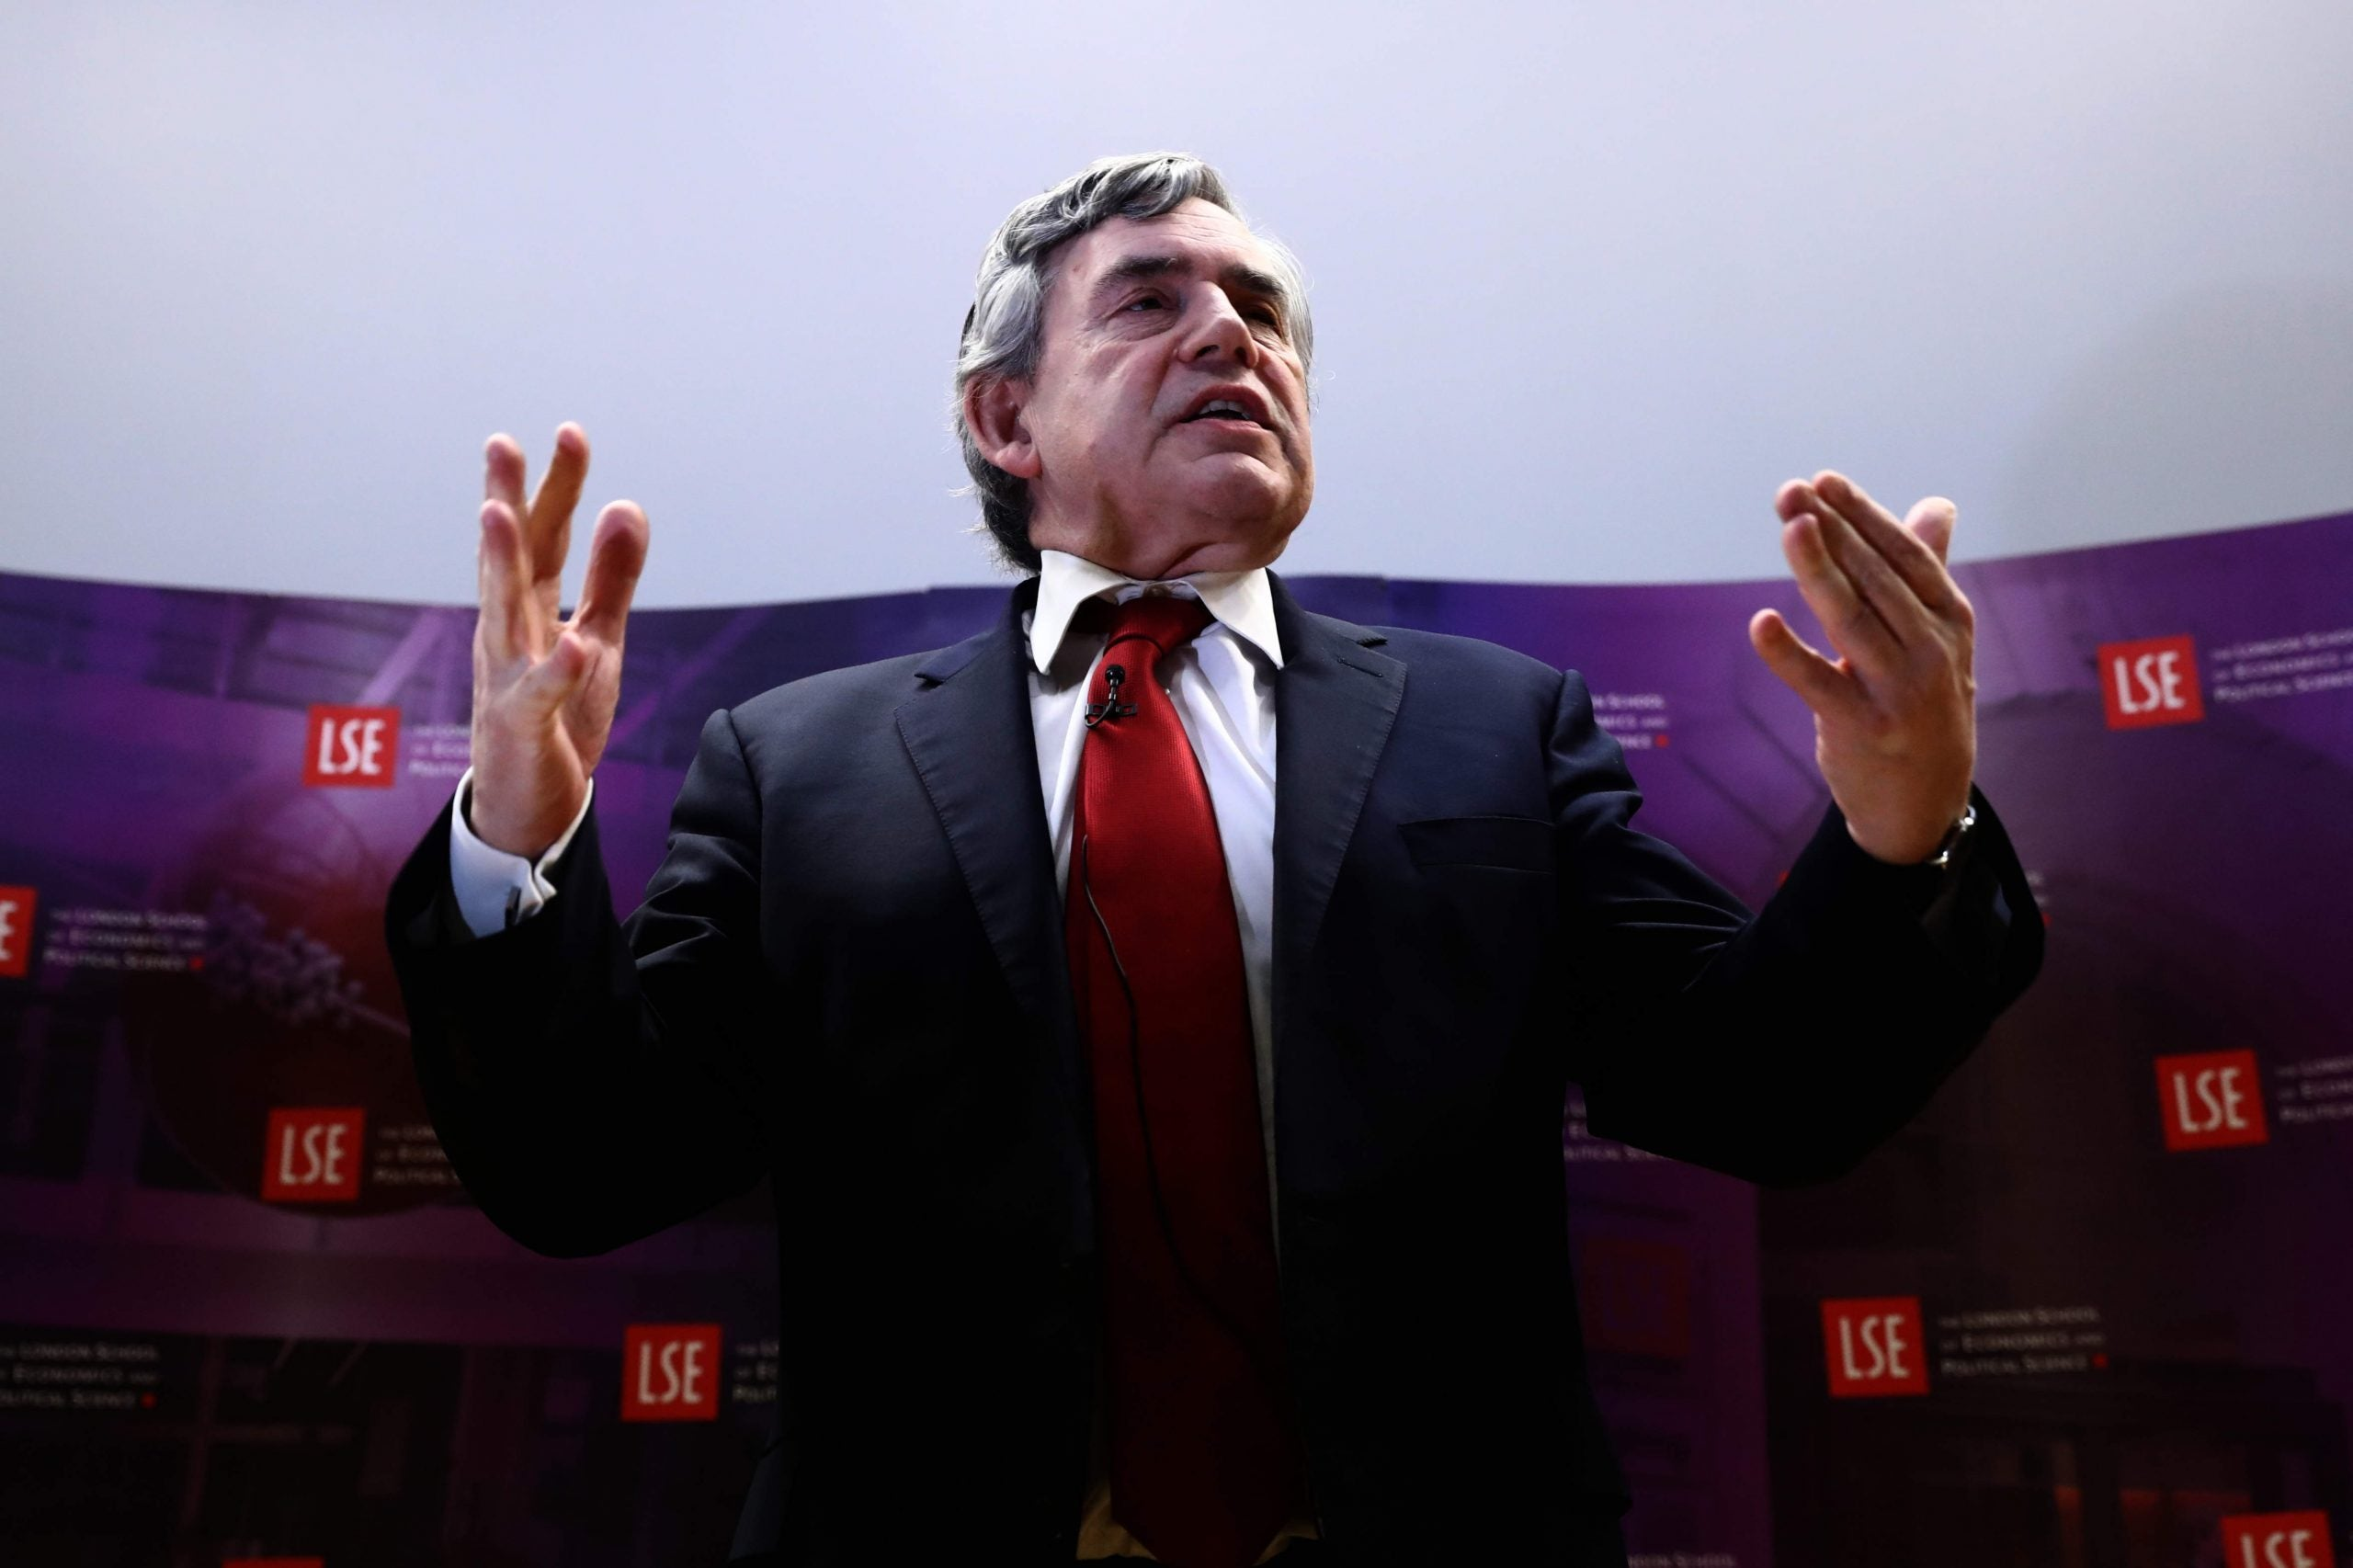 With David Cameron unconvincing, it's up to Gordon Brown to keep Britain in the EU